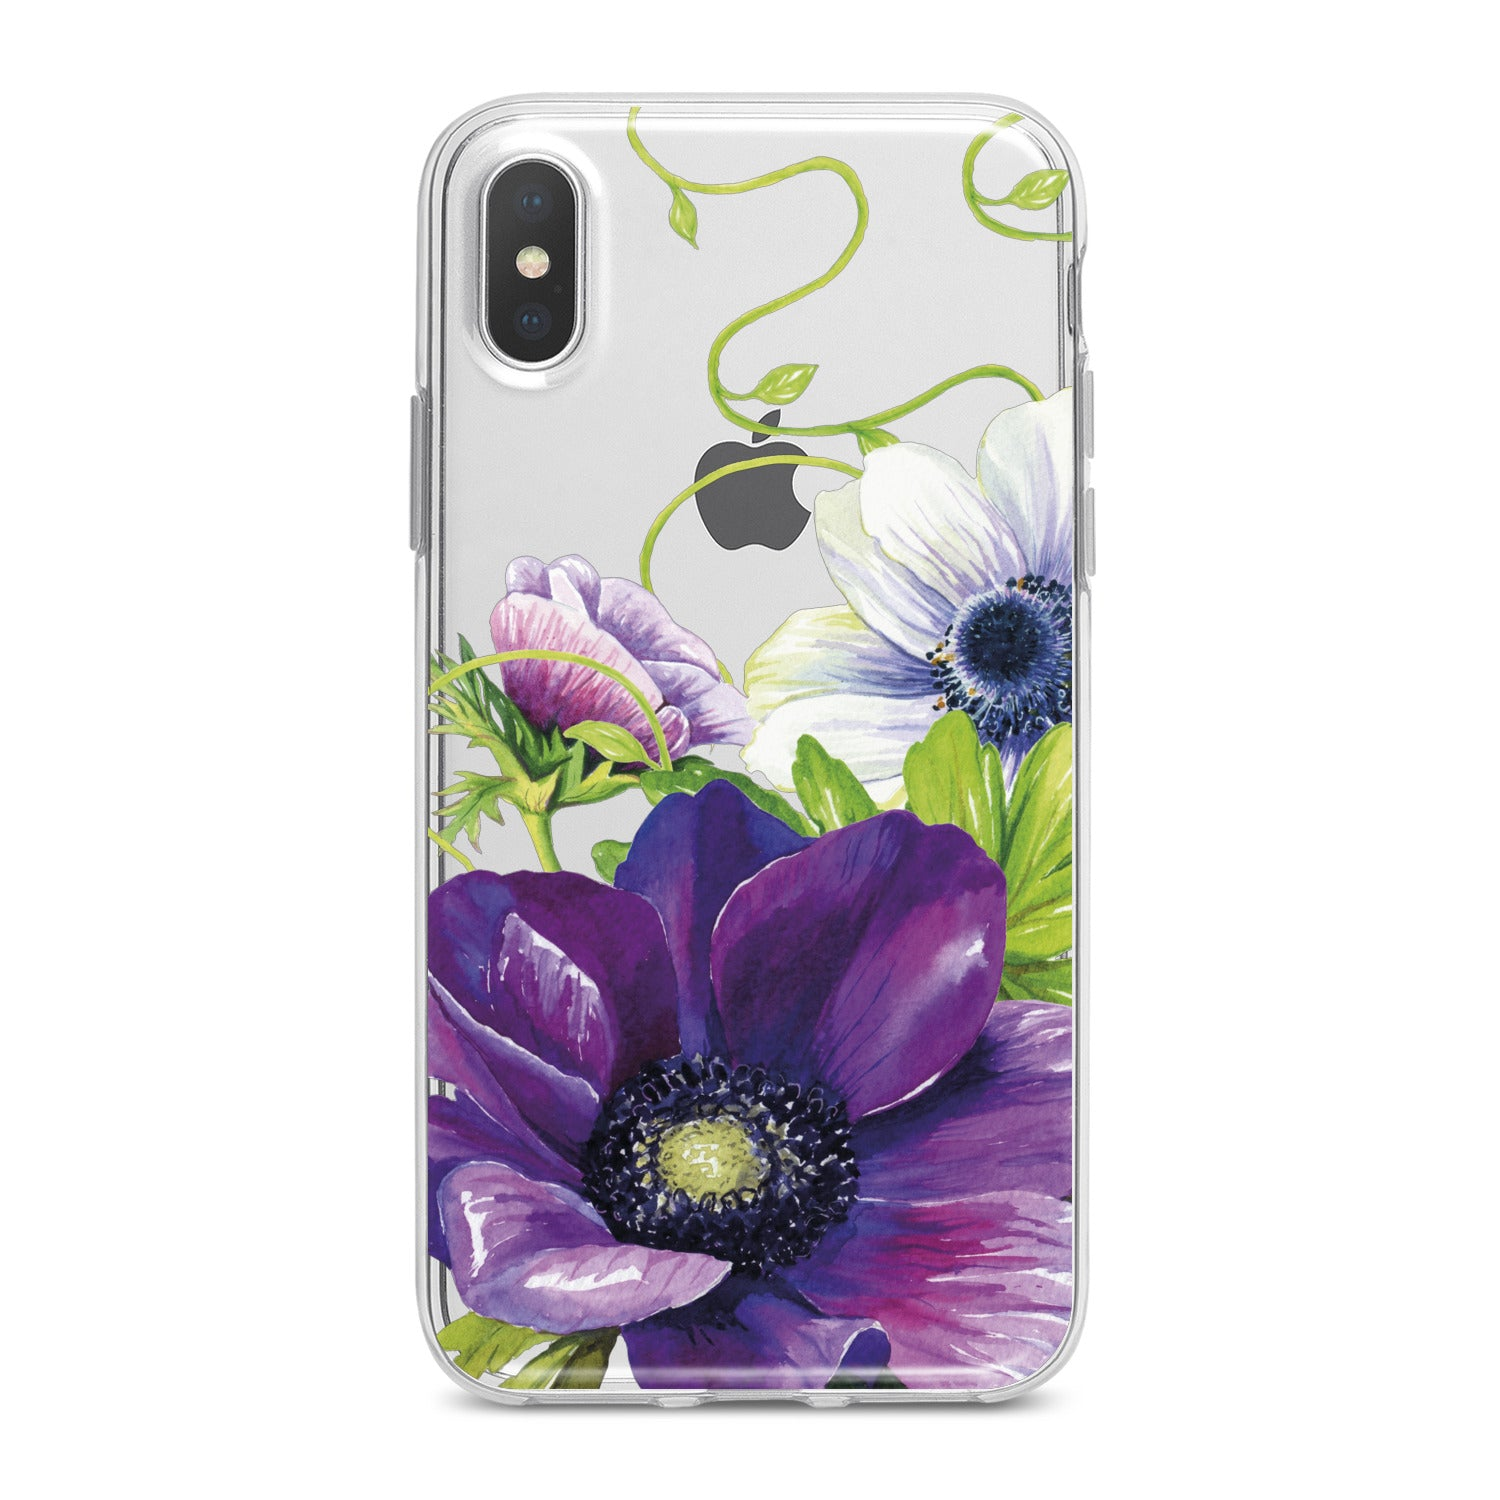 Lex Altern Purple Flower Phone Case for your iPhone & Android phone.